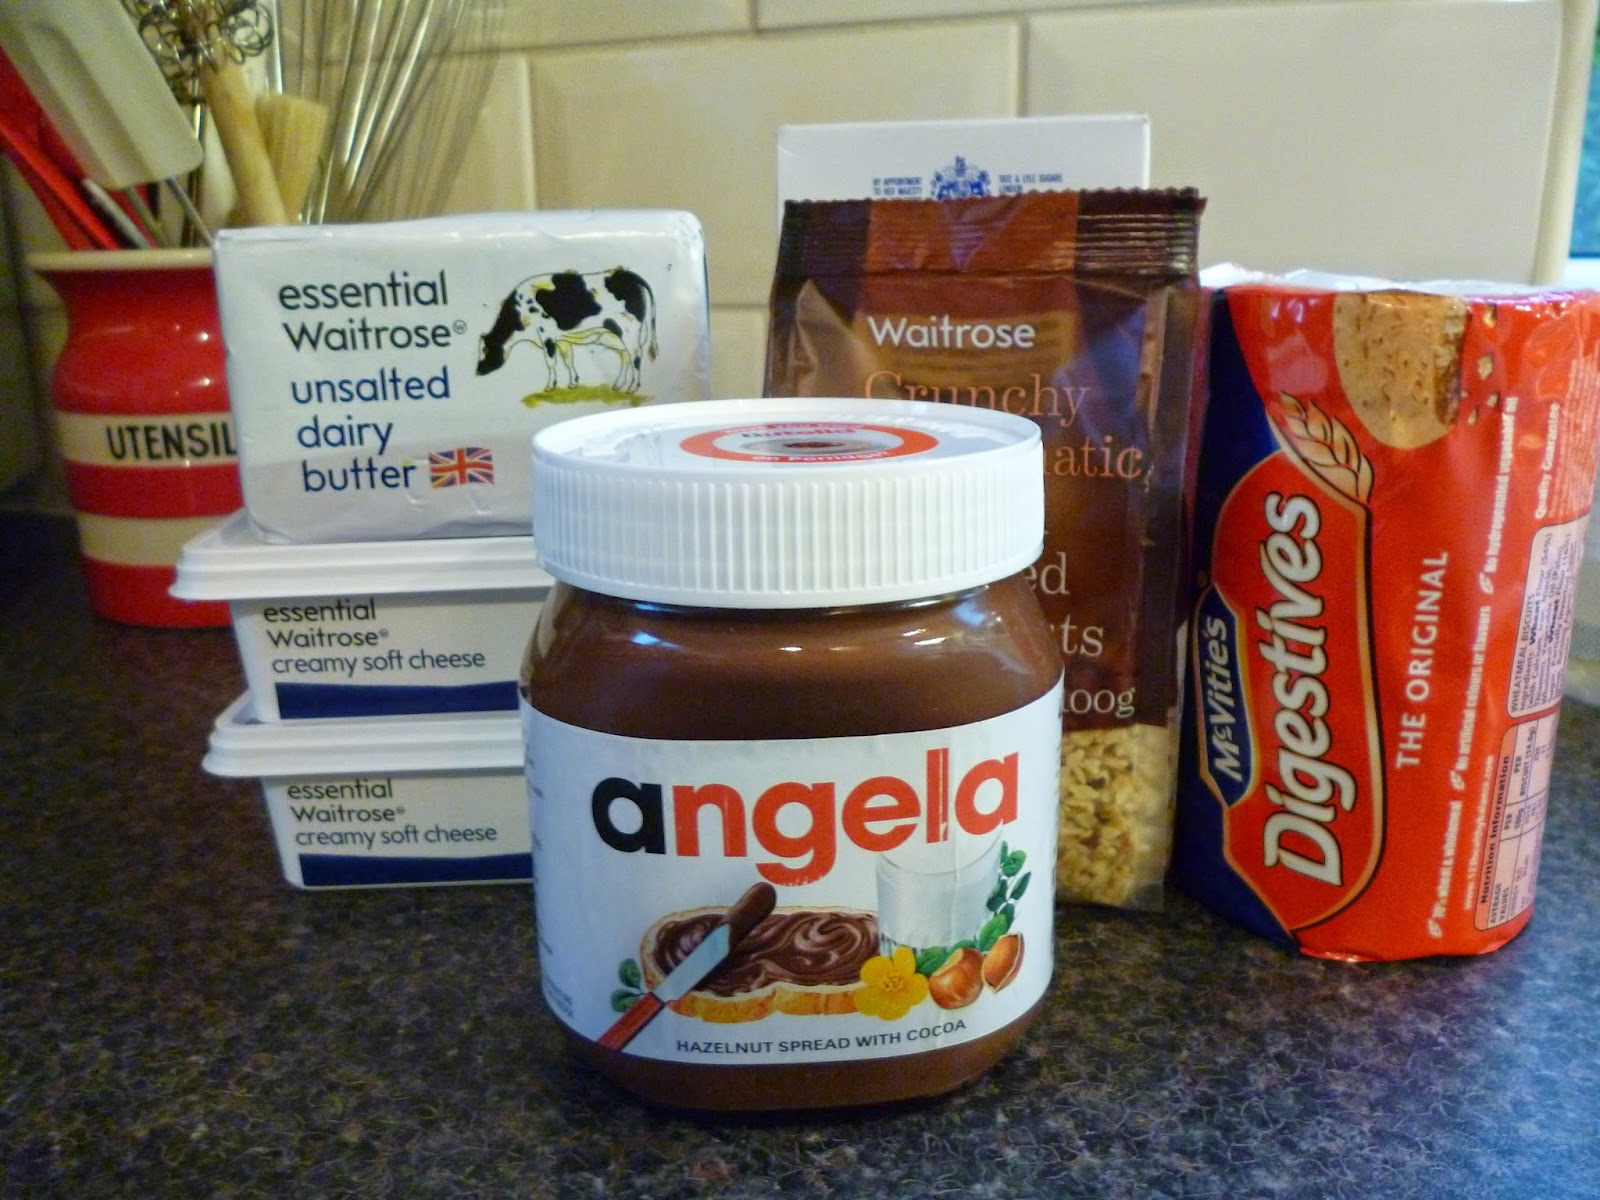 personalised jar of Nutella